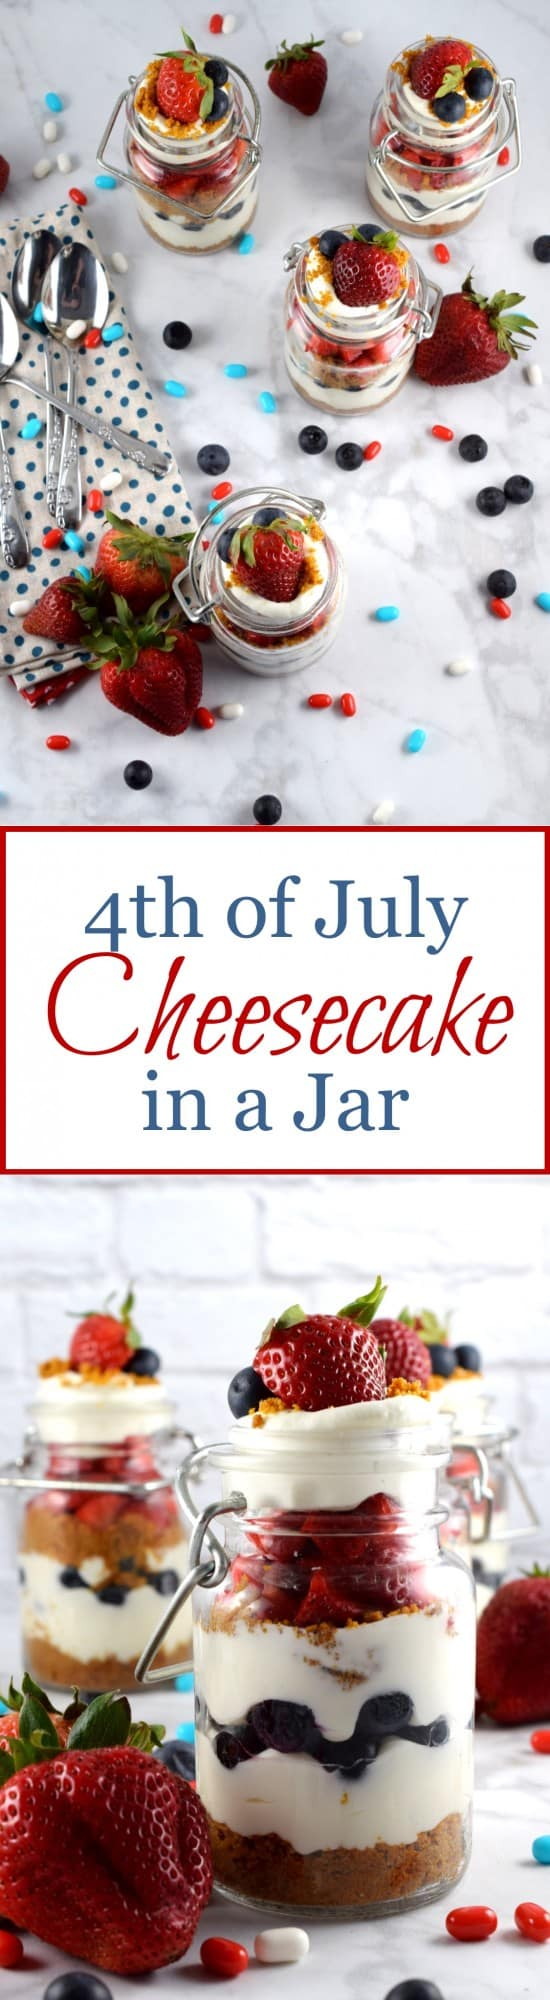 4th of July Cheesecake in a Jar